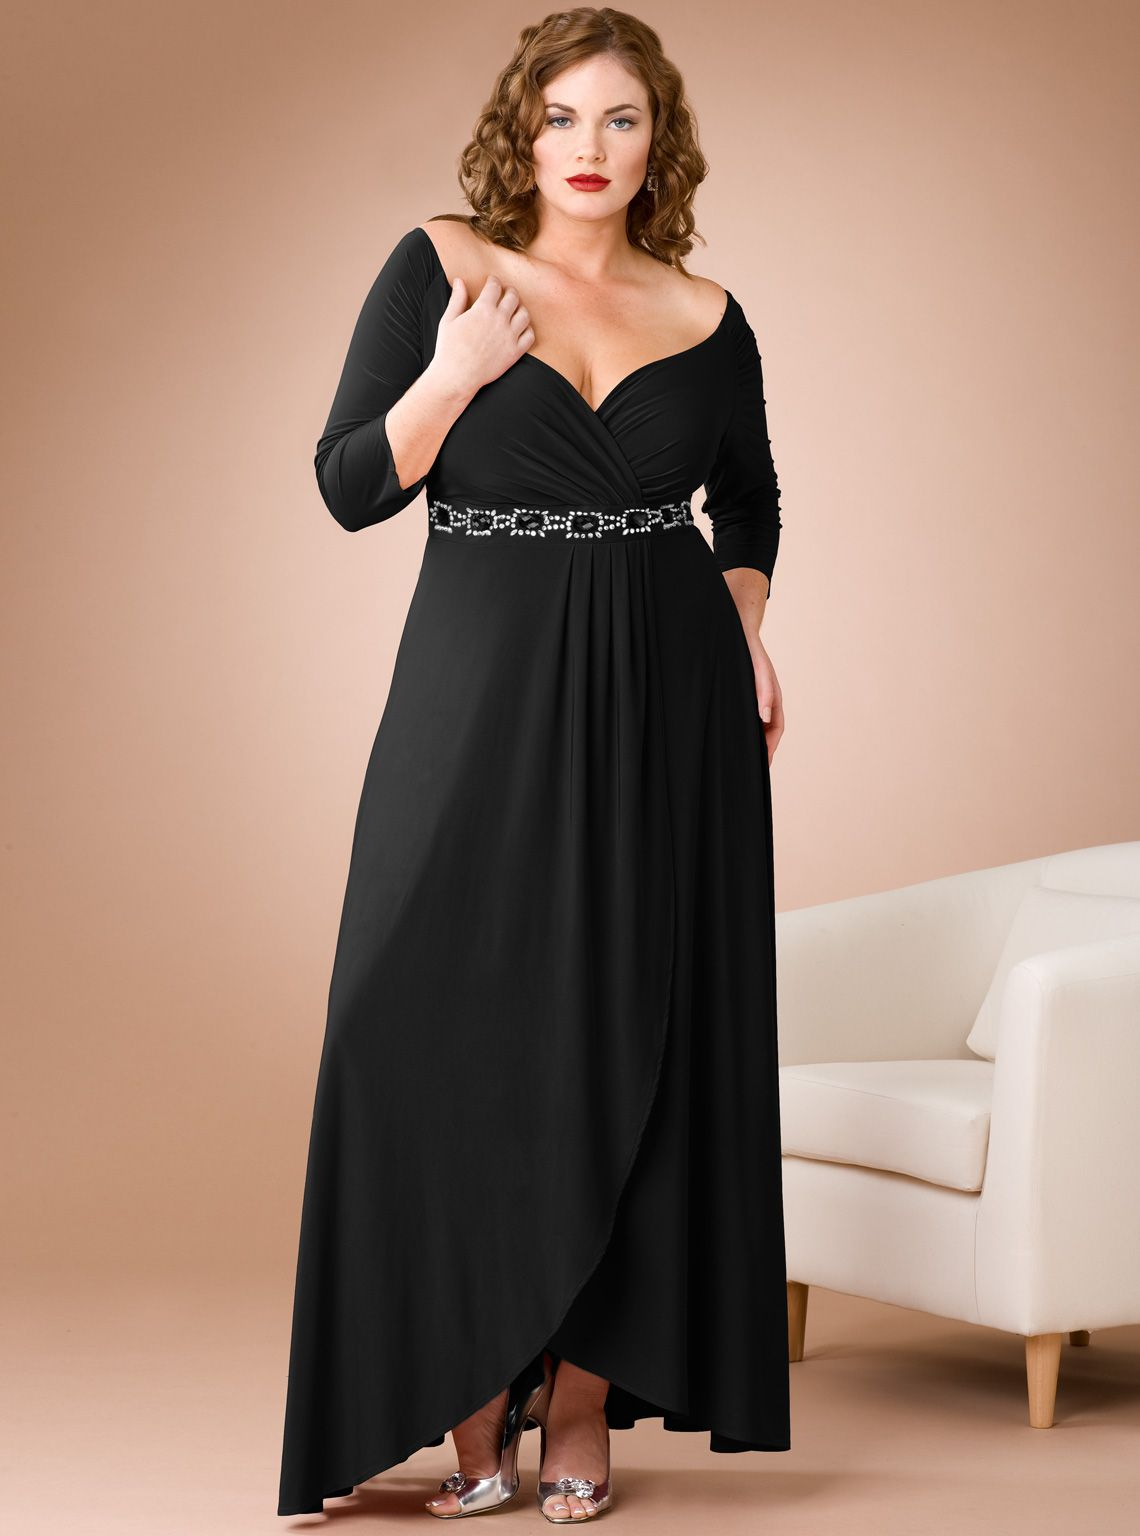 Sexy Plus Size Dresses Style Icons Dressings And Icons